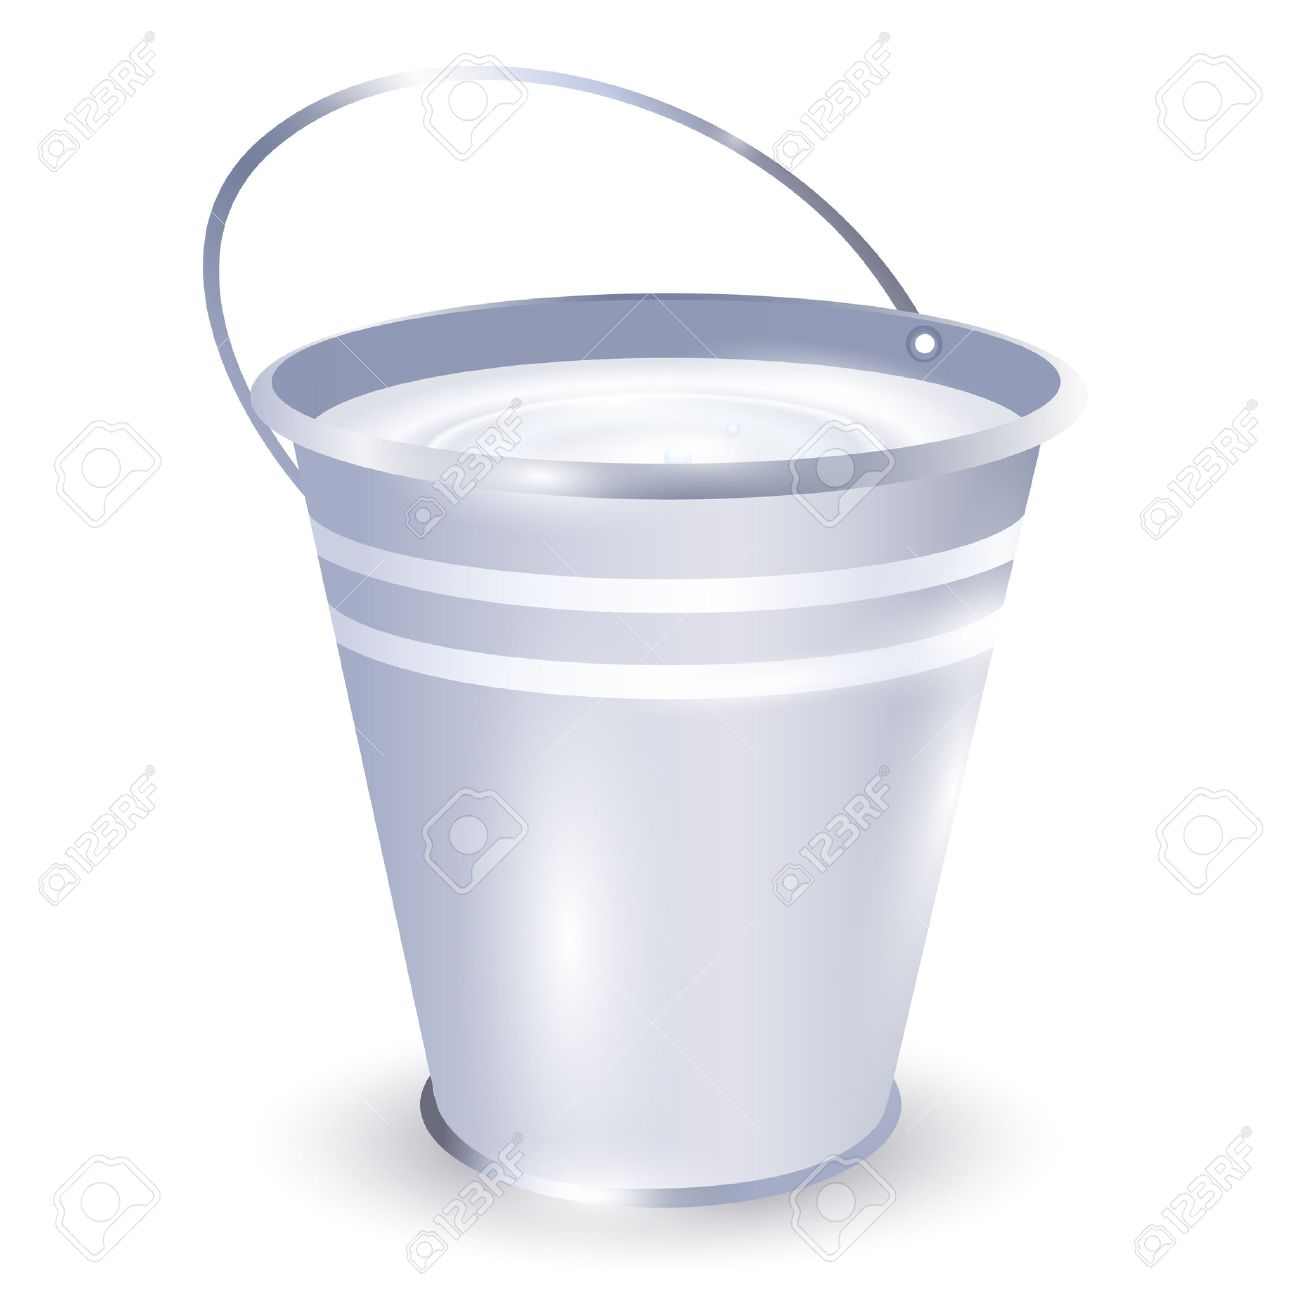 Metal Bucket With Milk Over White Background Royalty Cliparts 1297x1300